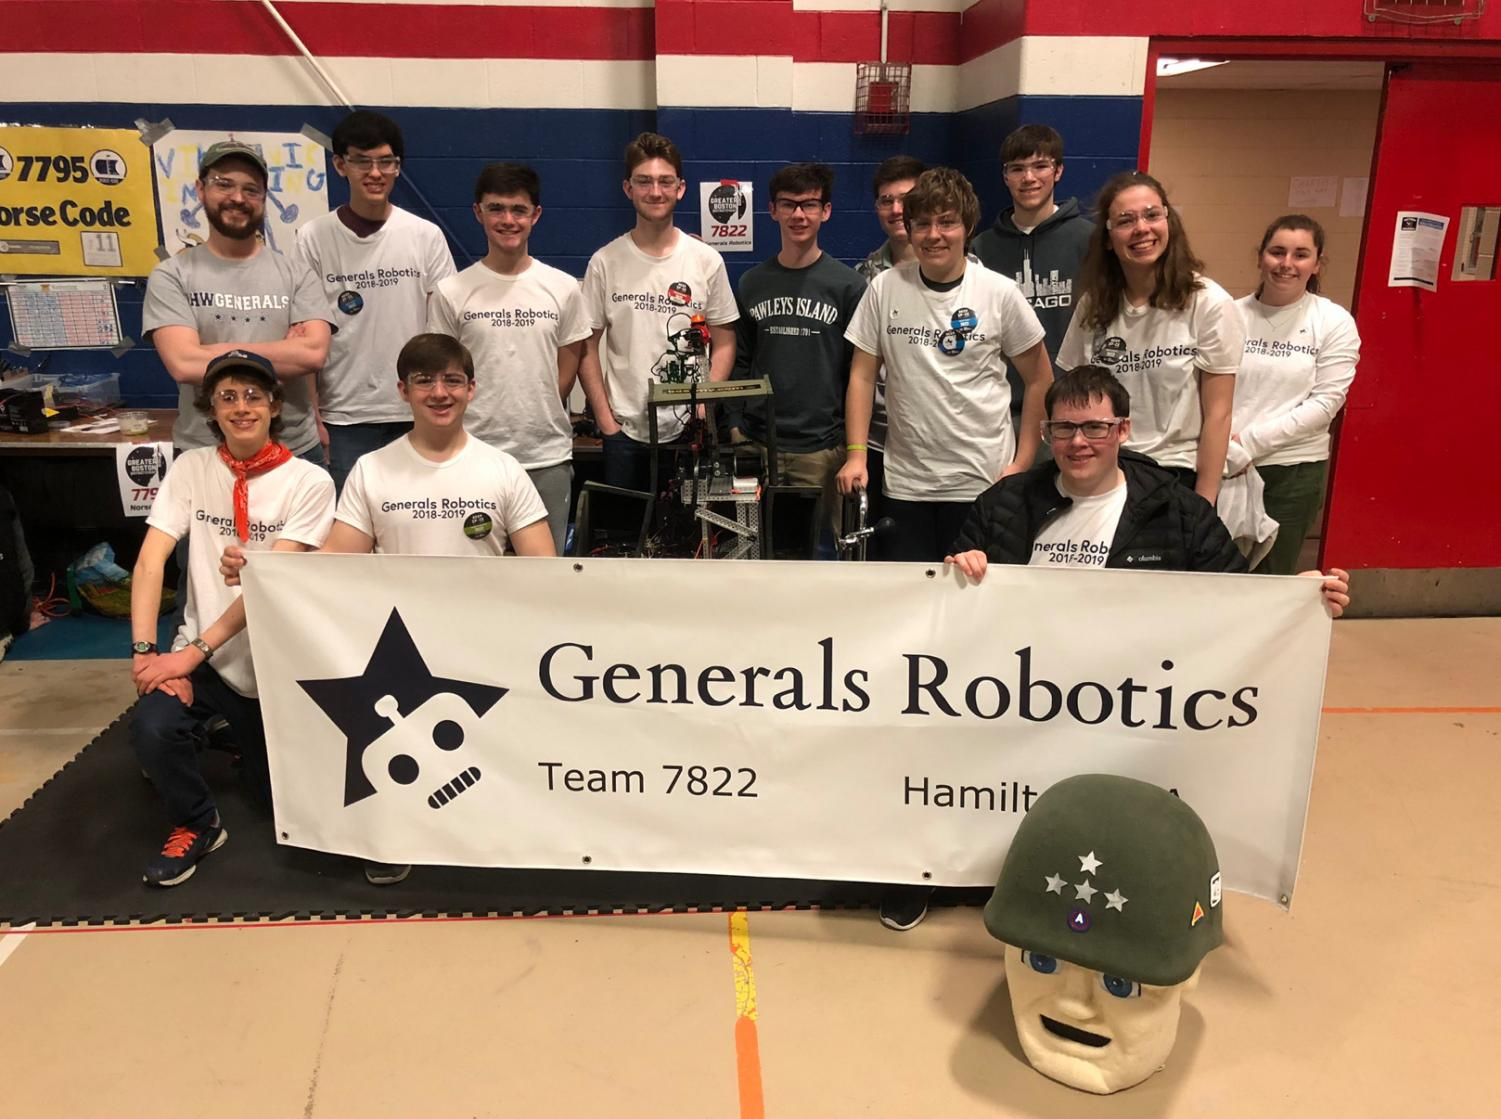 Part of the Generals Robotics team at their competition in Revere, Ma.